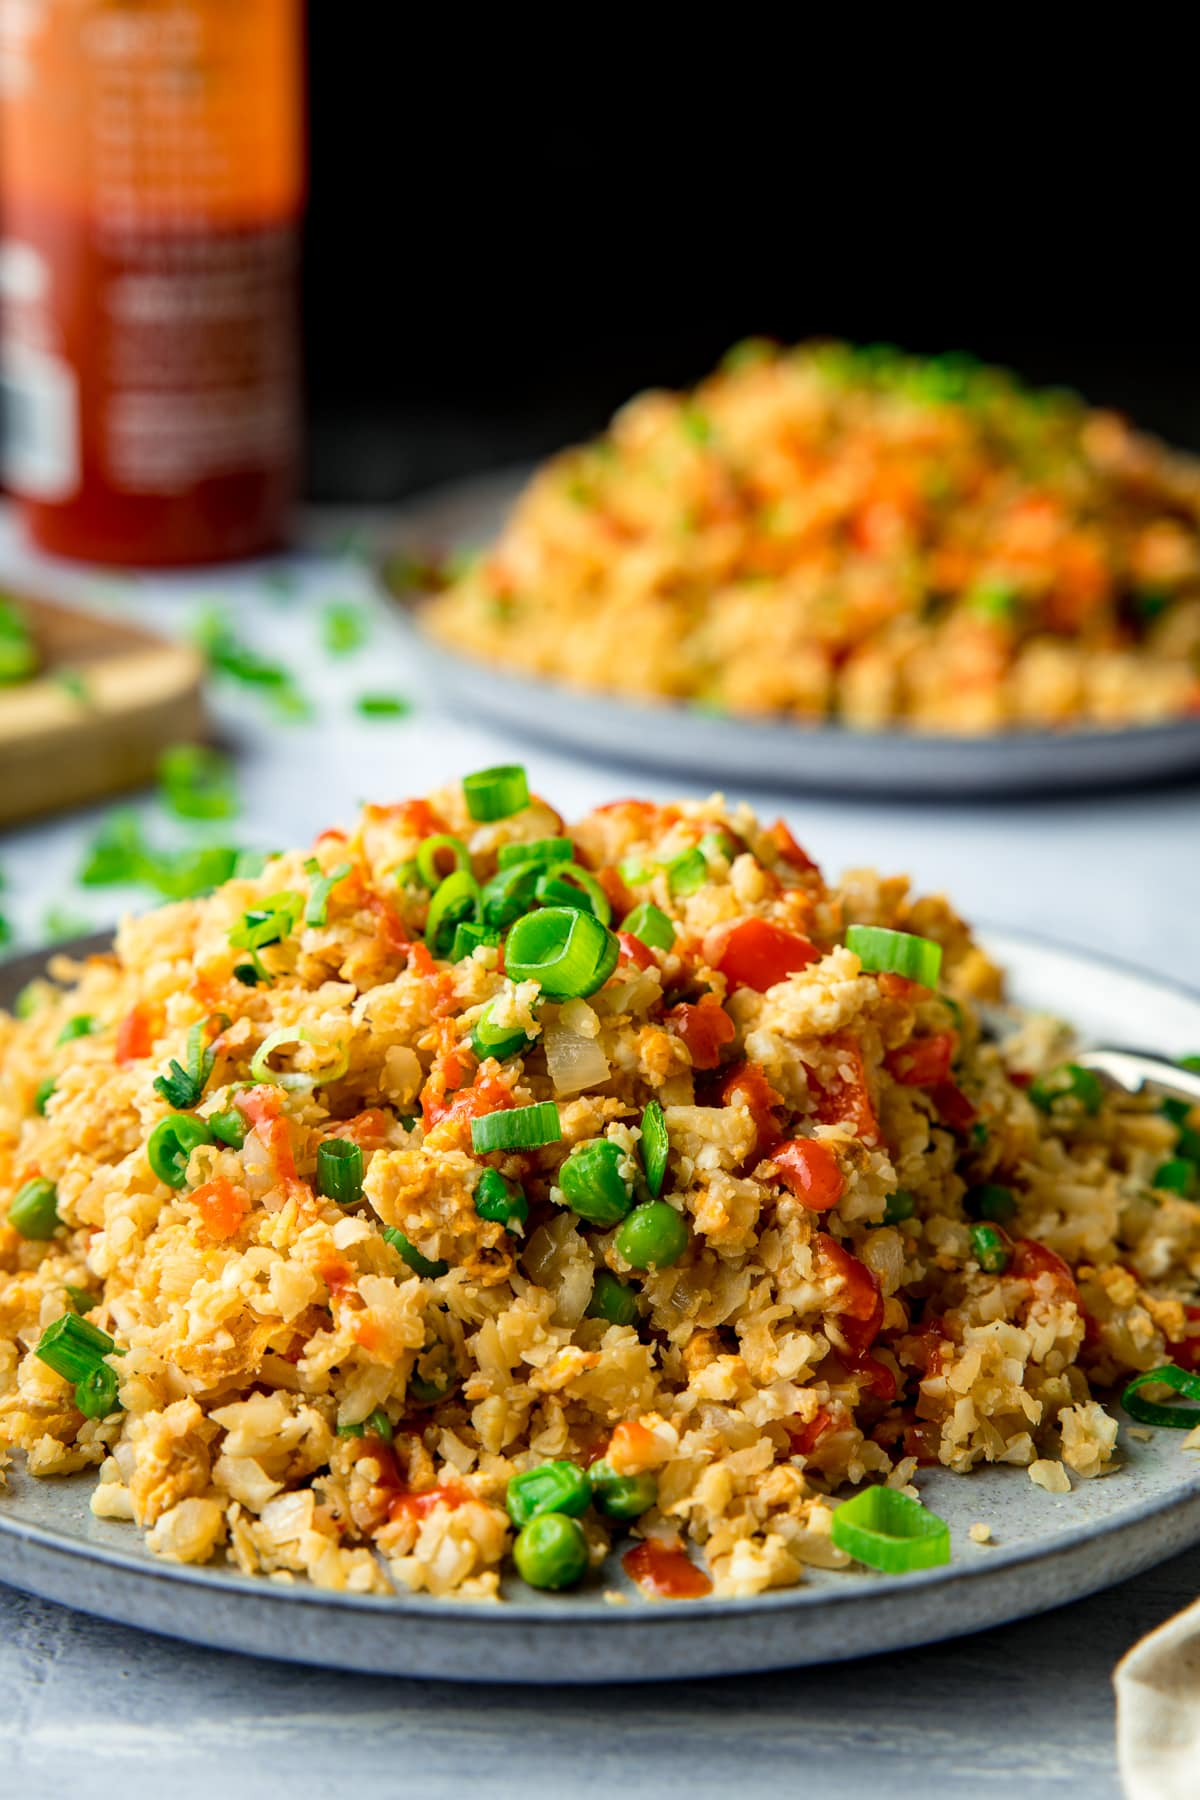 Cauliflower fried rice piled up on a plate with a further plate and chilli sauce bottle in the background